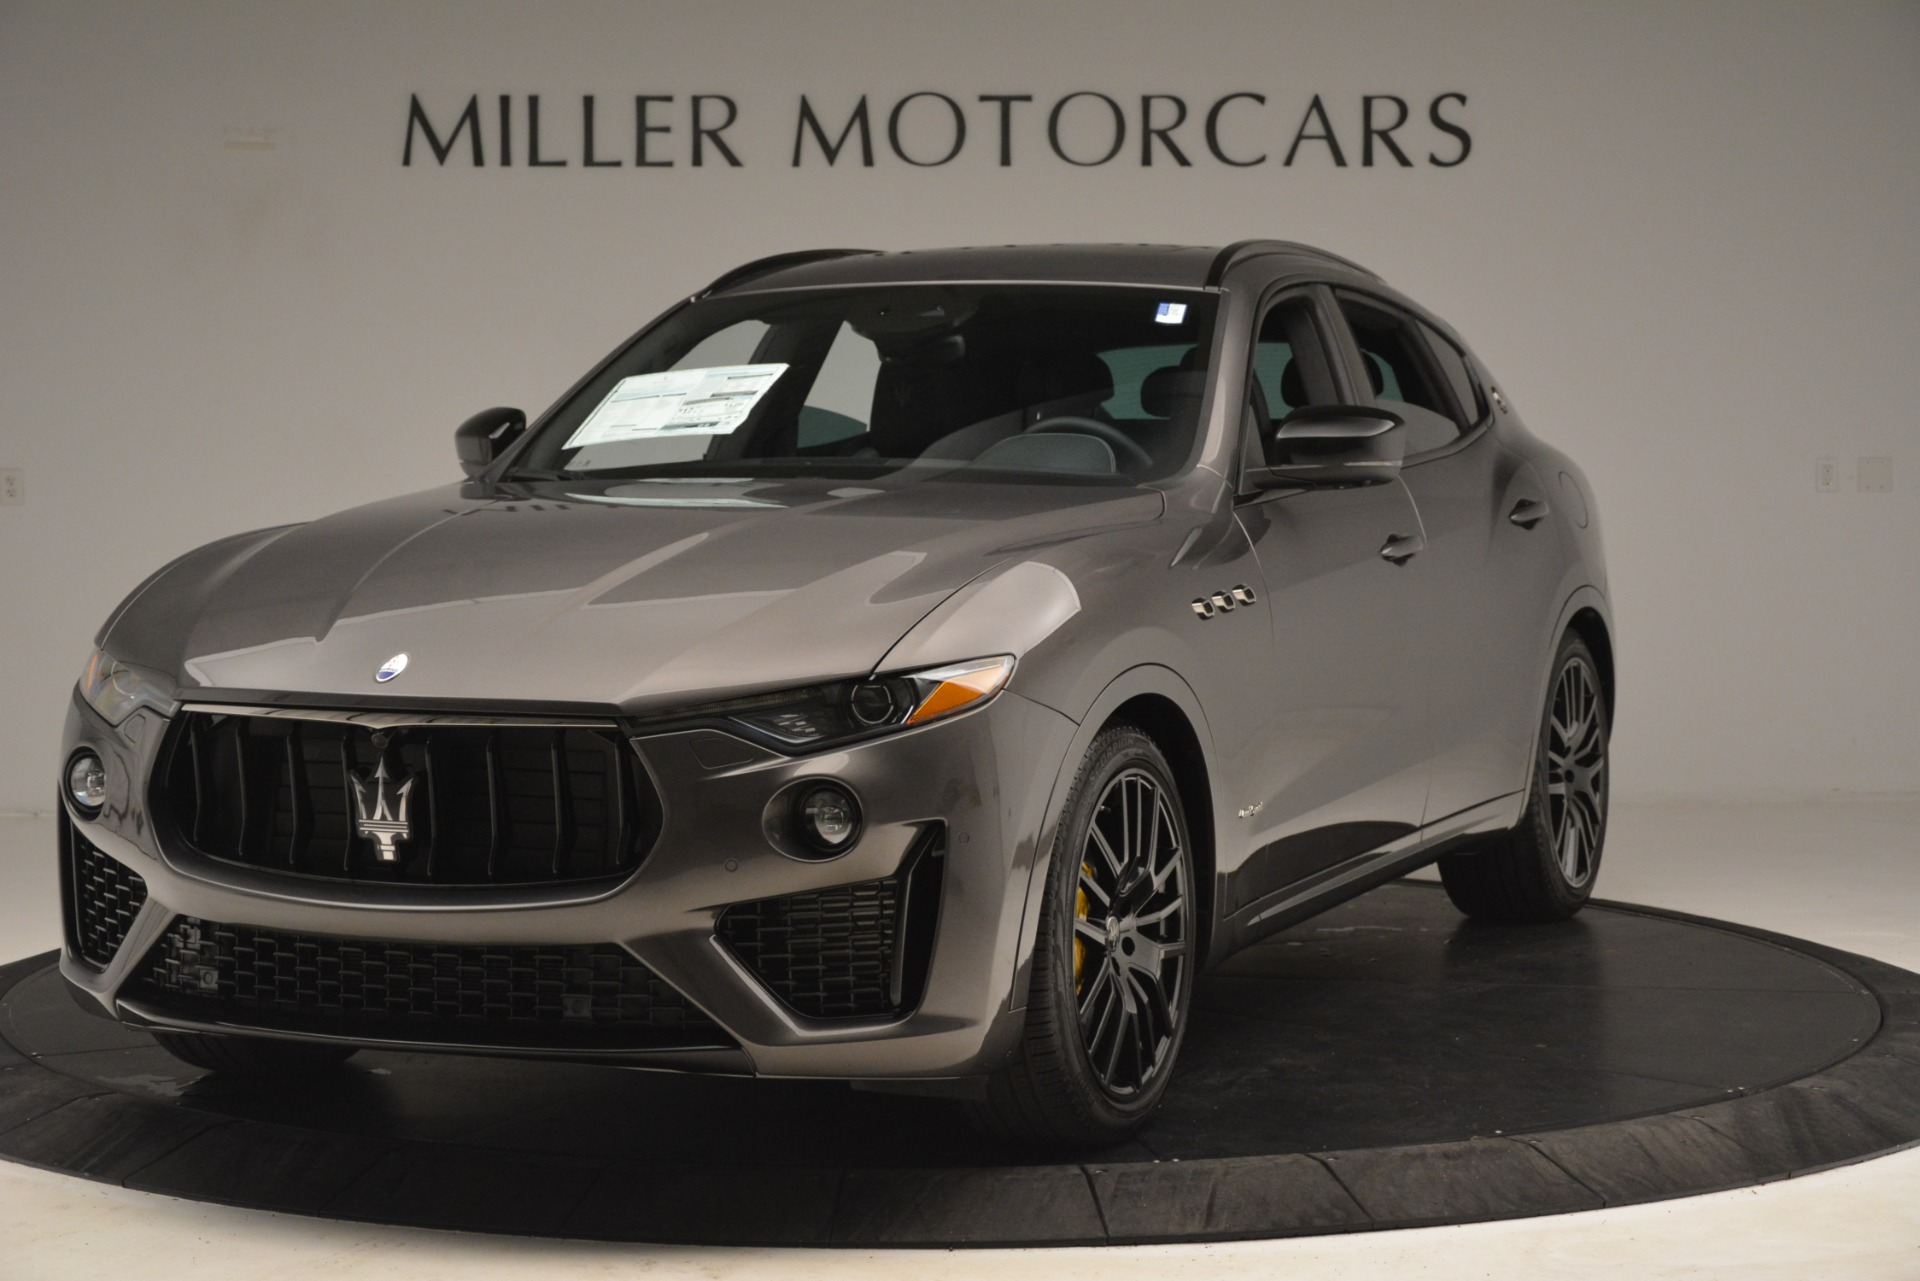 New 2019 Maserati Levante SQ4 GranSport Nerissimo for sale Sold at Aston Martin of Greenwich in Greenwich CT 06830 1